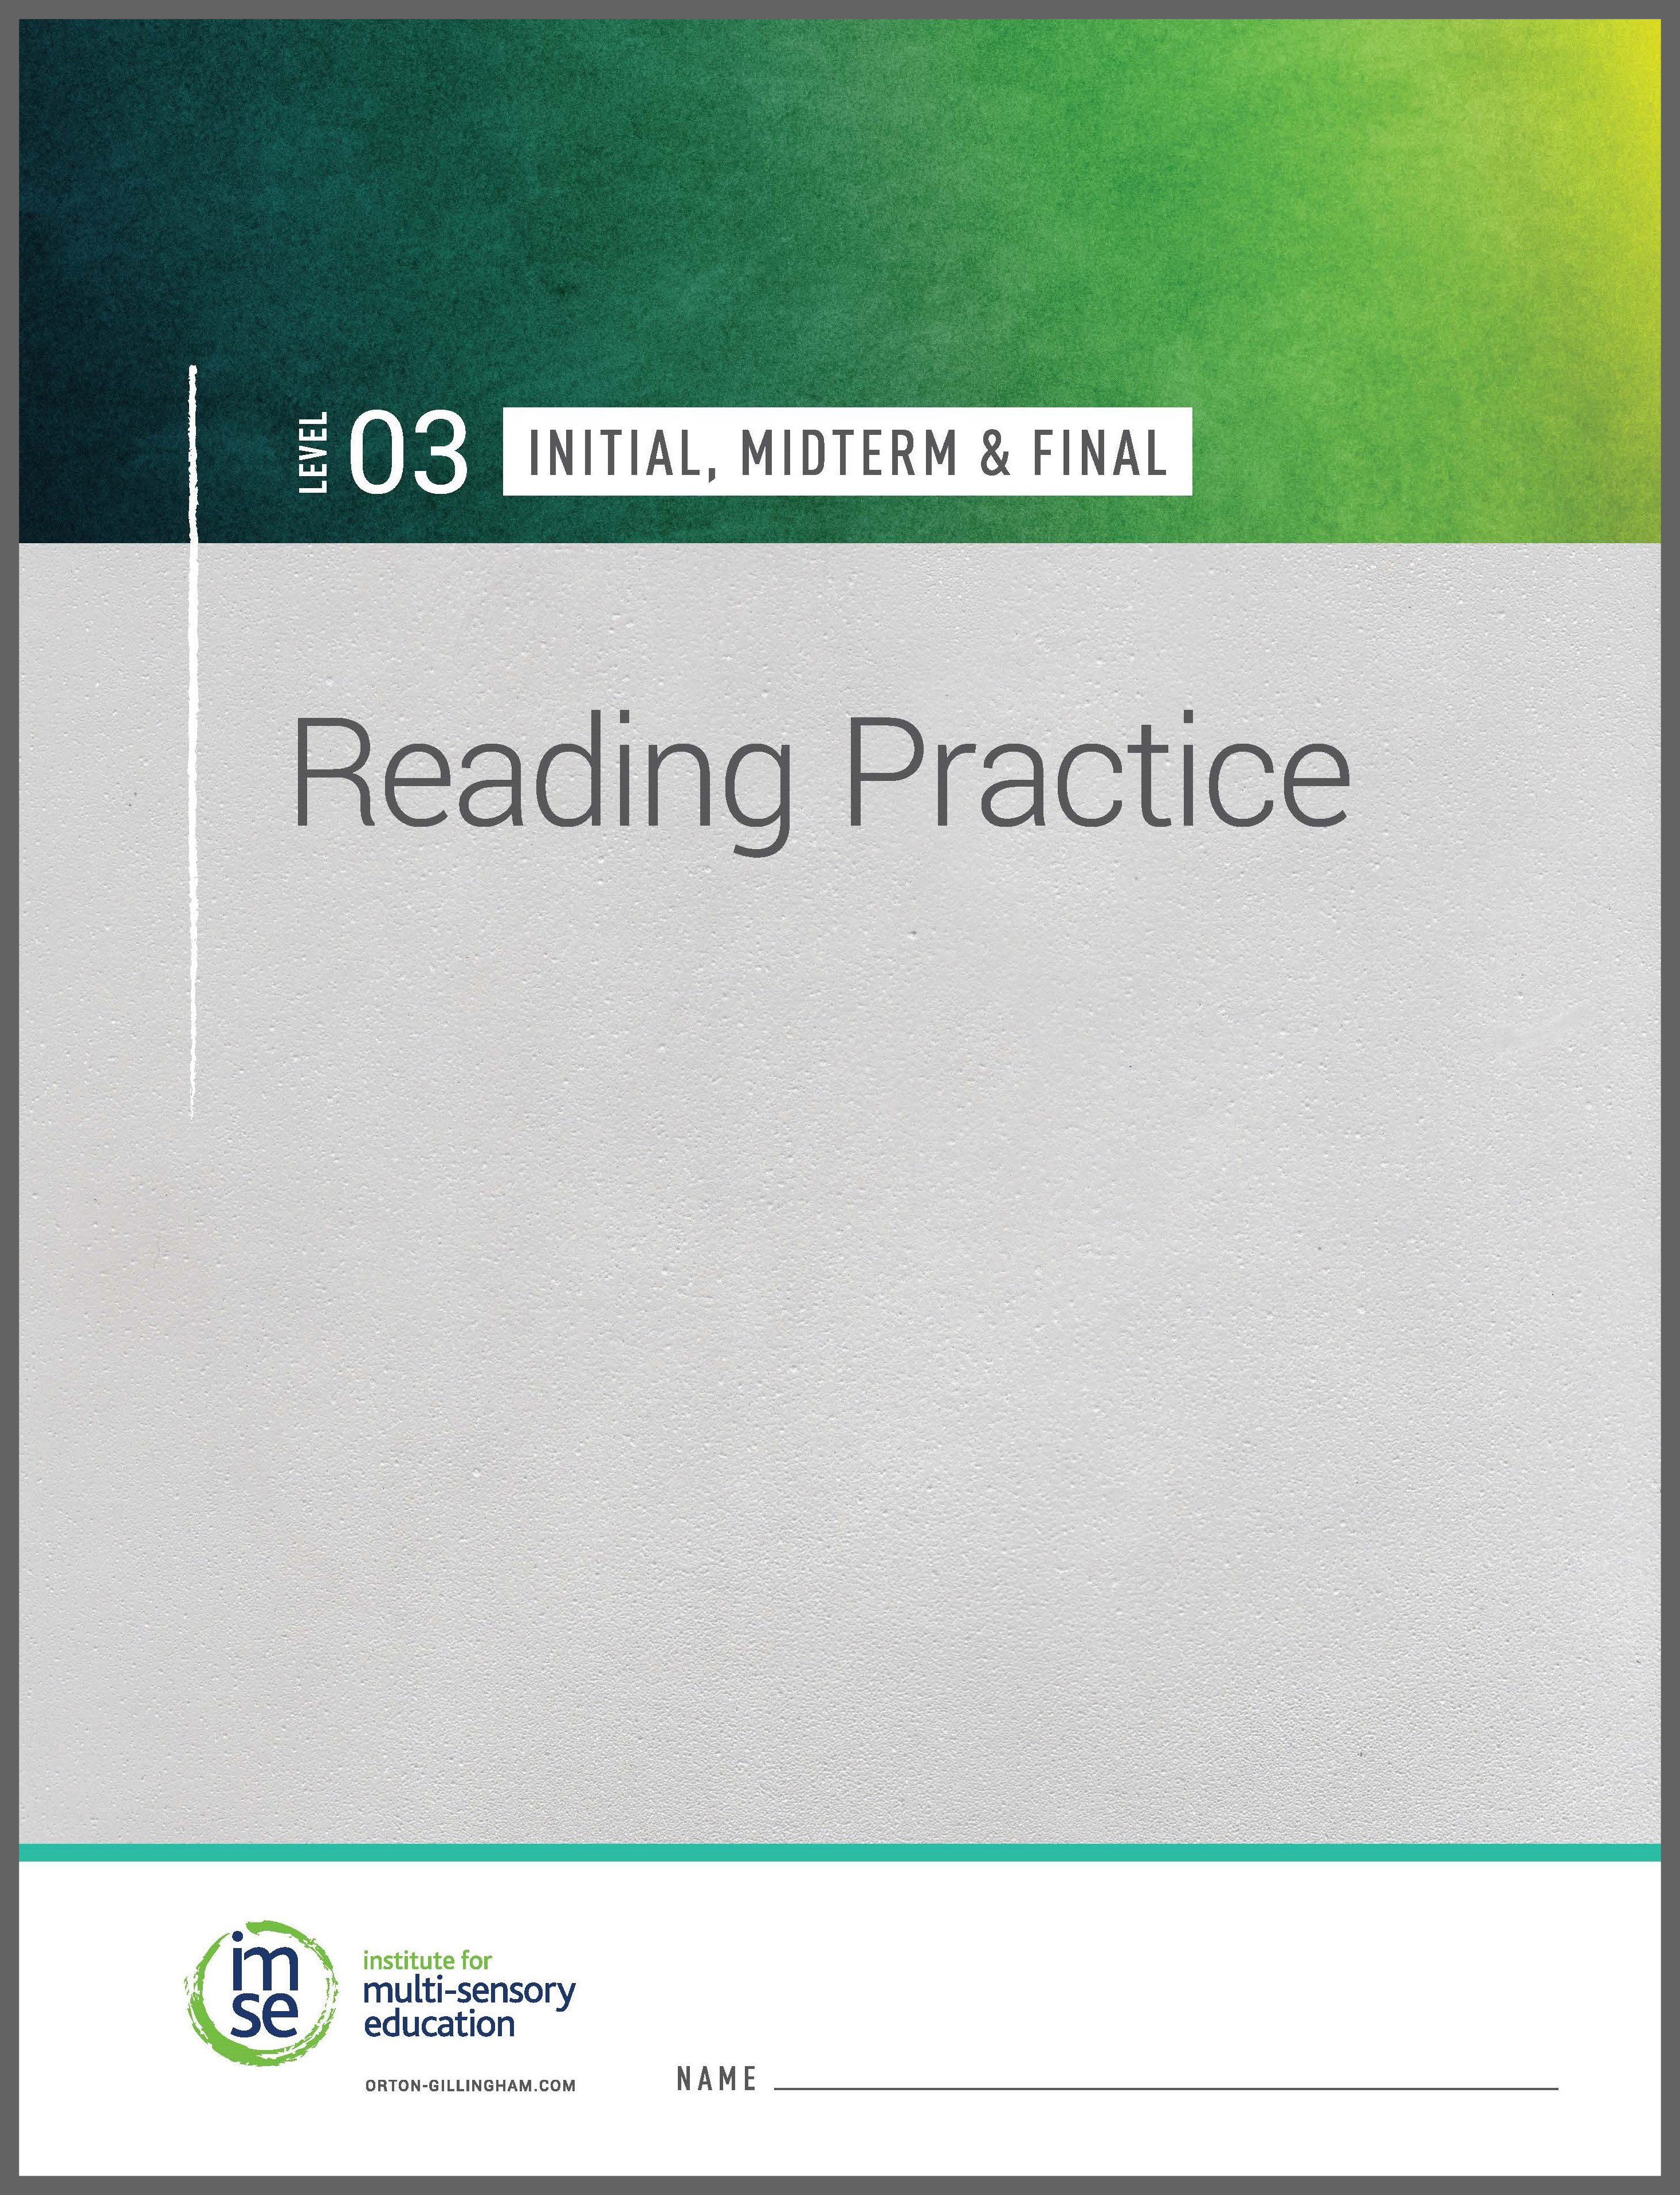 Level 03 Reading Practice - Initial, Midterm & Final